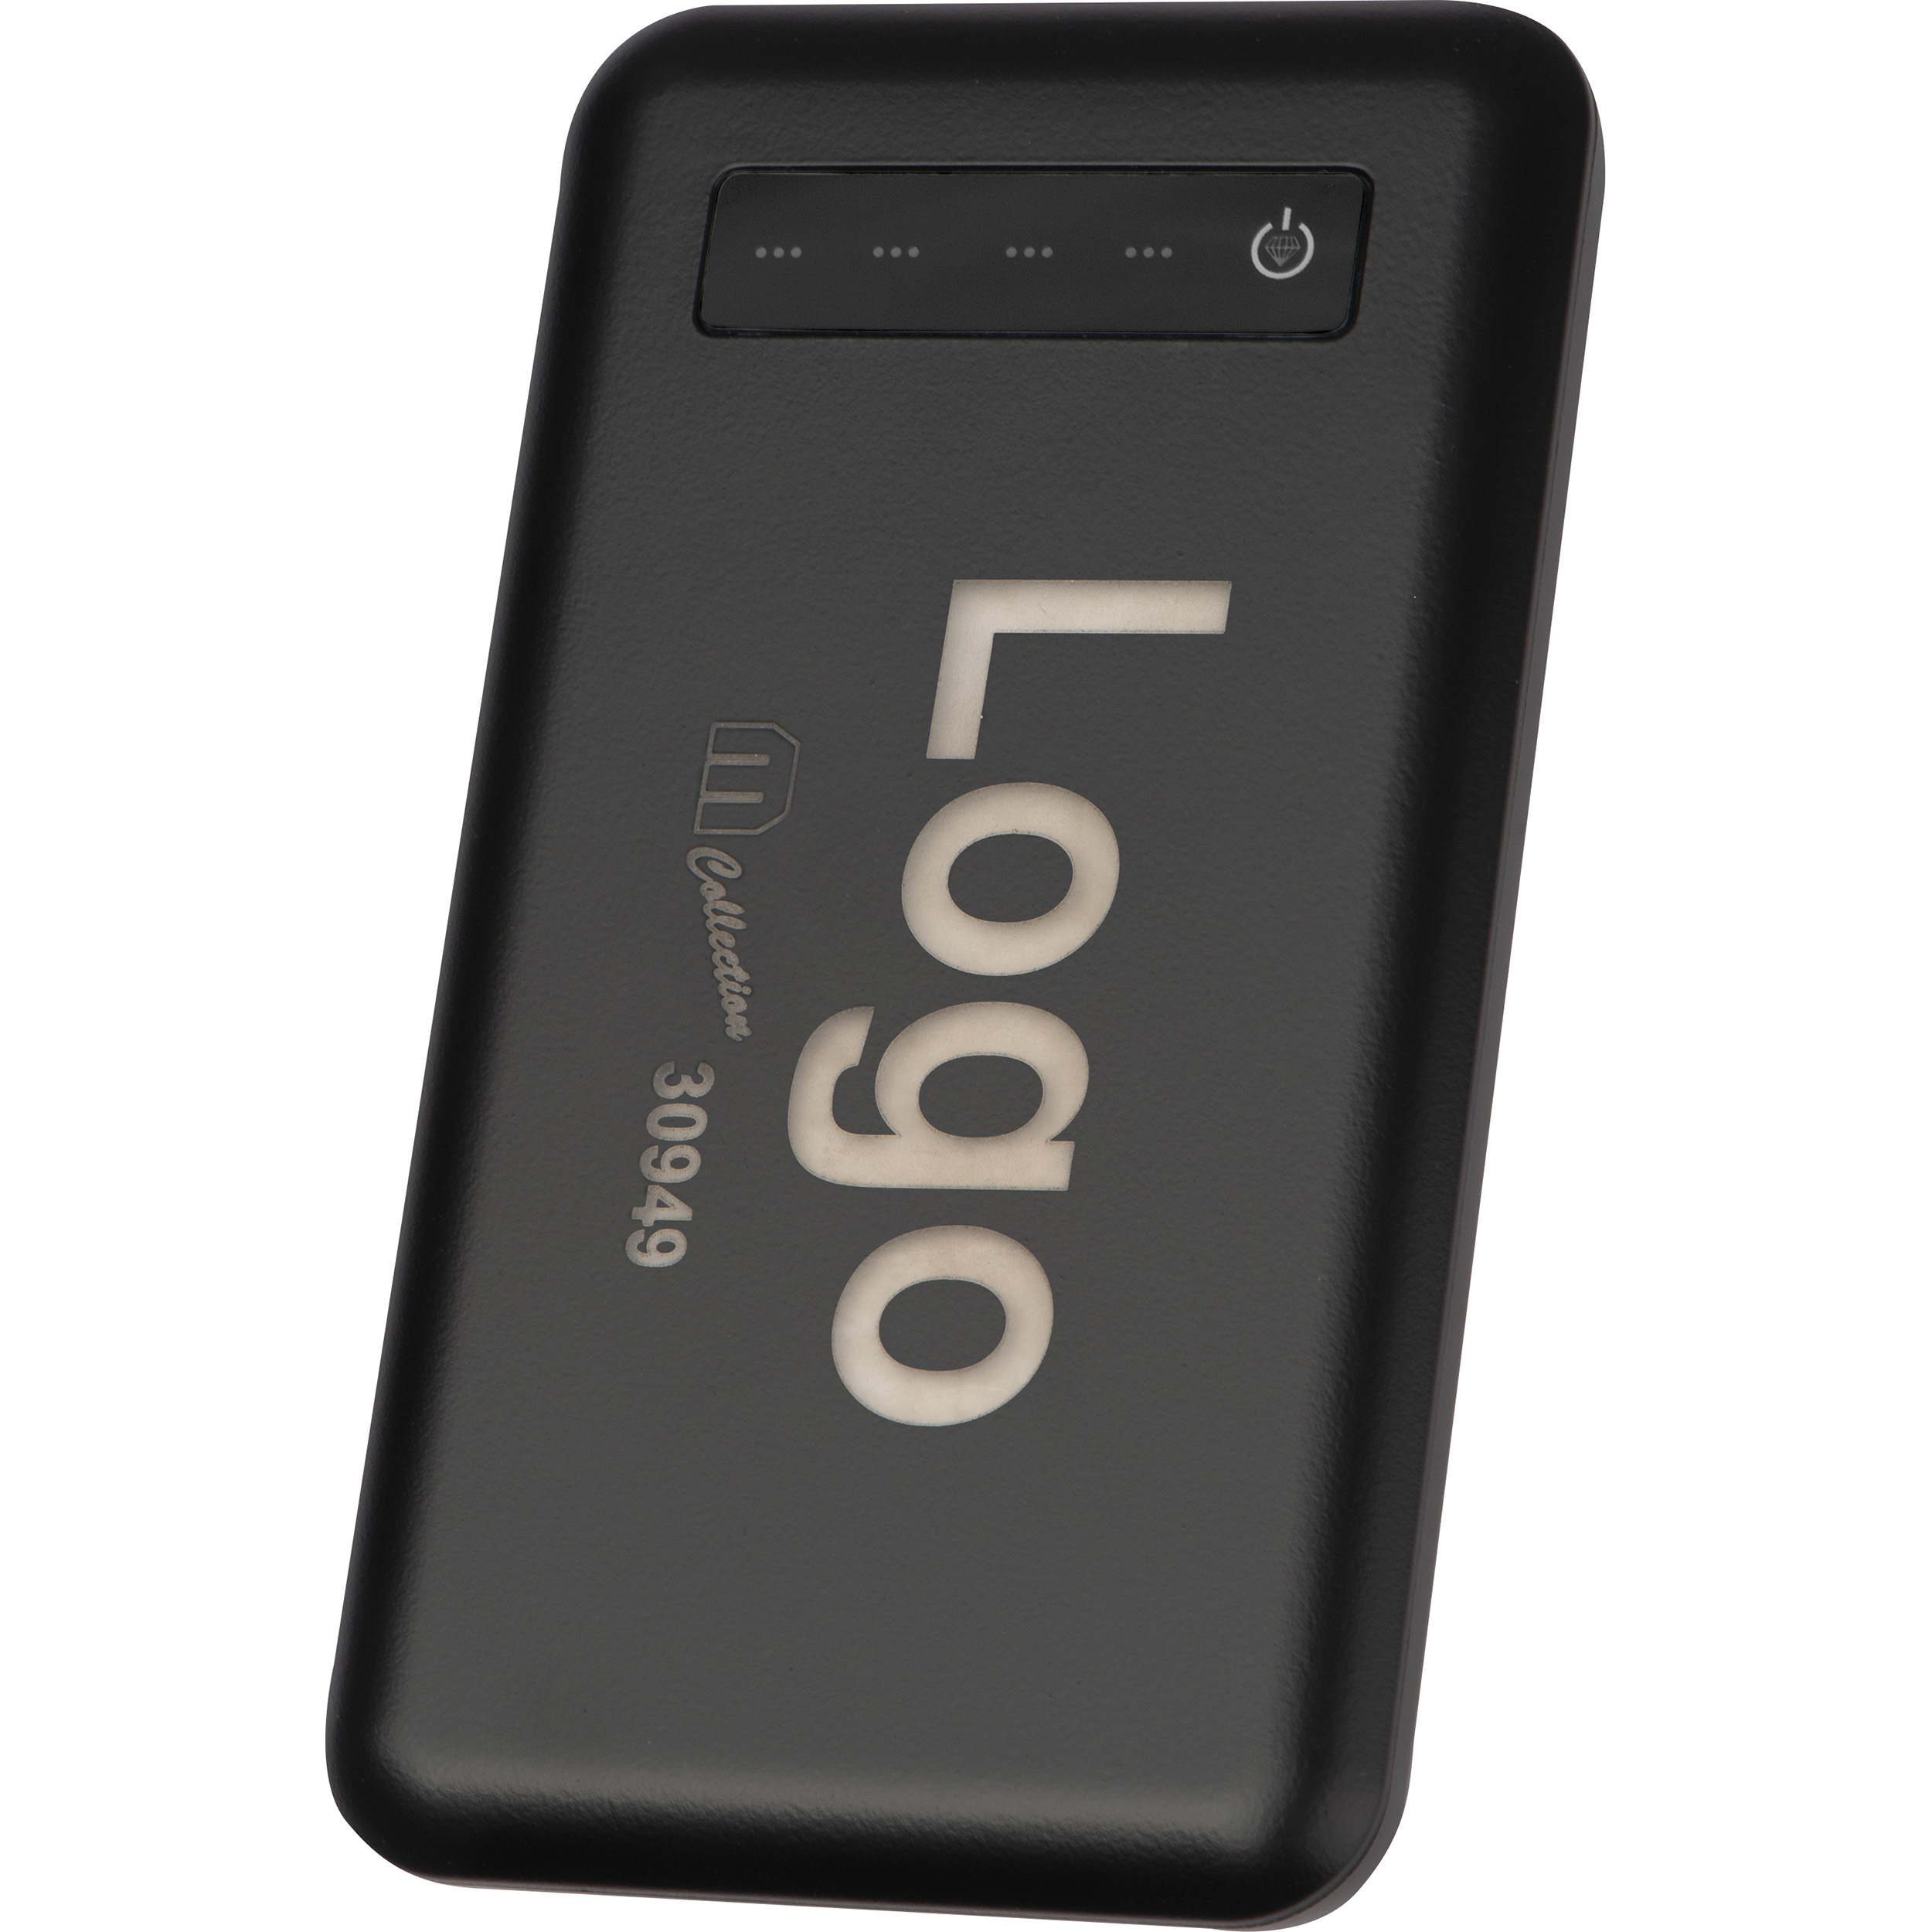 Batterie de secour 8.000 mAh avec LED